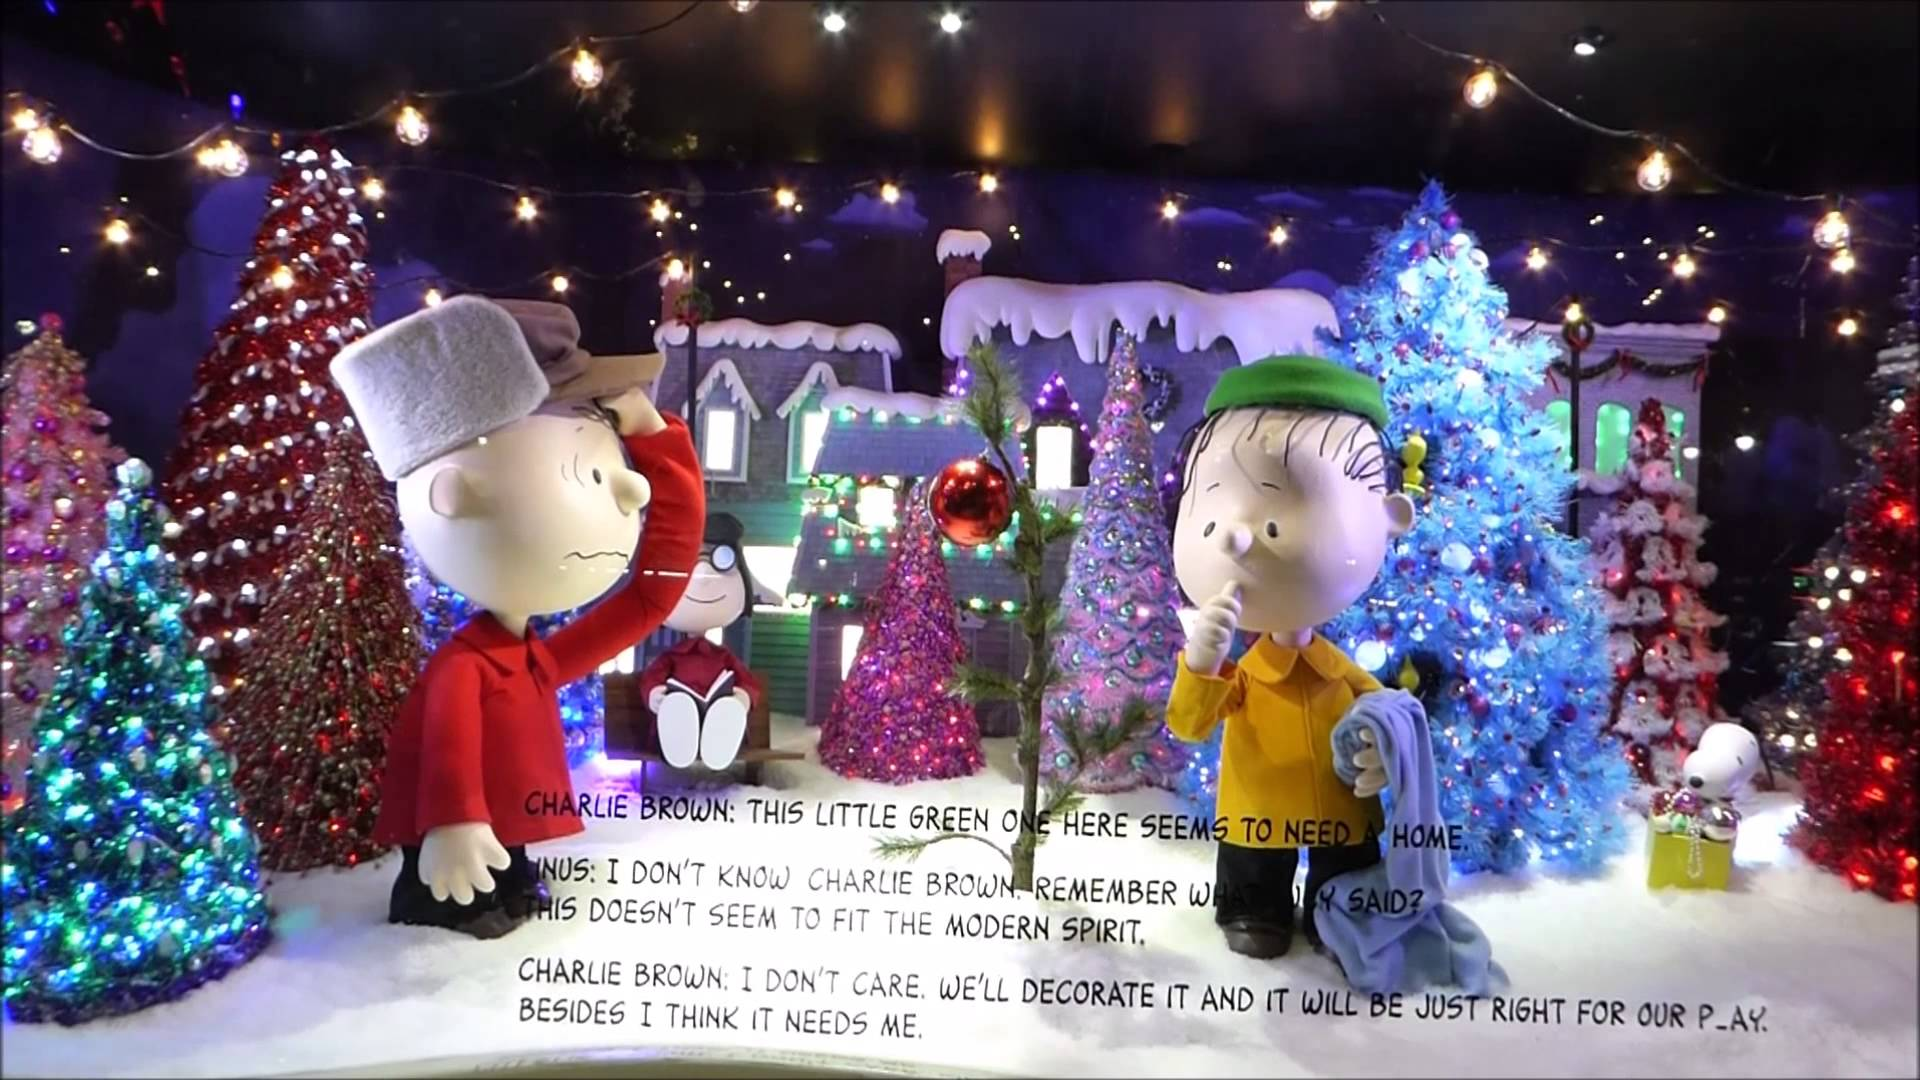 Charlie Brown and the gang, a little story between them and the winter spirit for this window display.